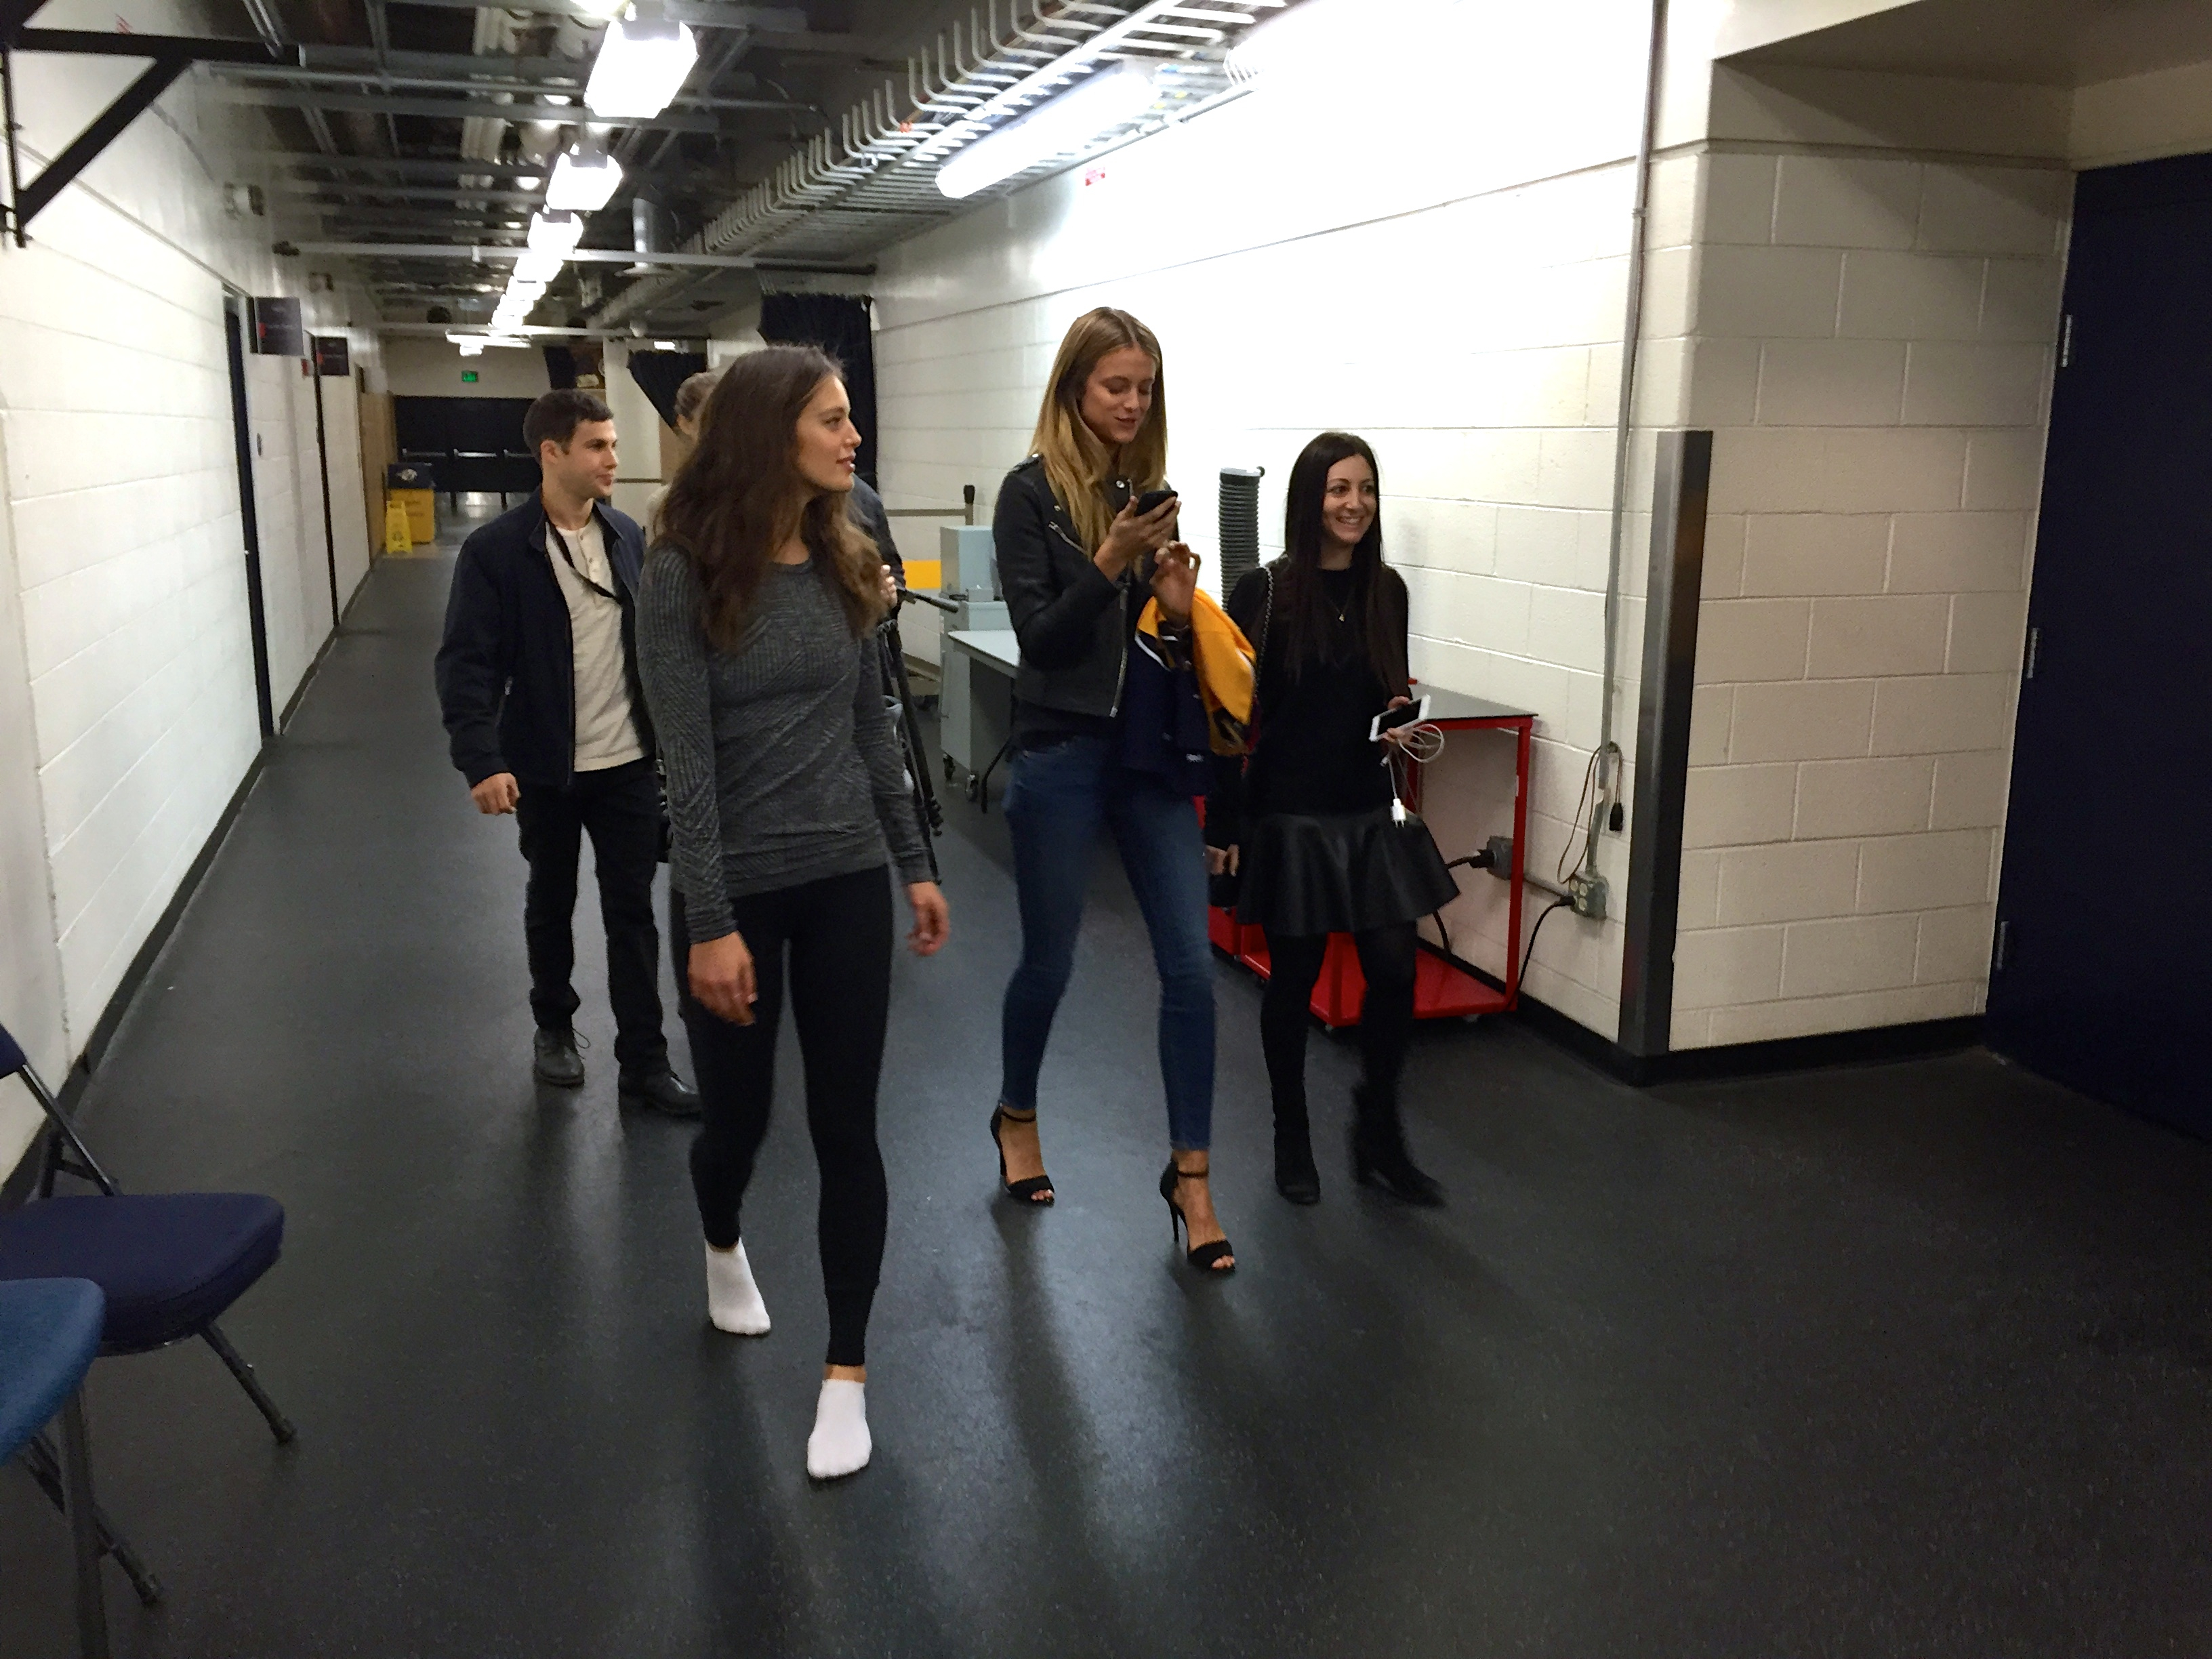 Emily DiDonato and Kate Bock enter Bridgestone Arena.